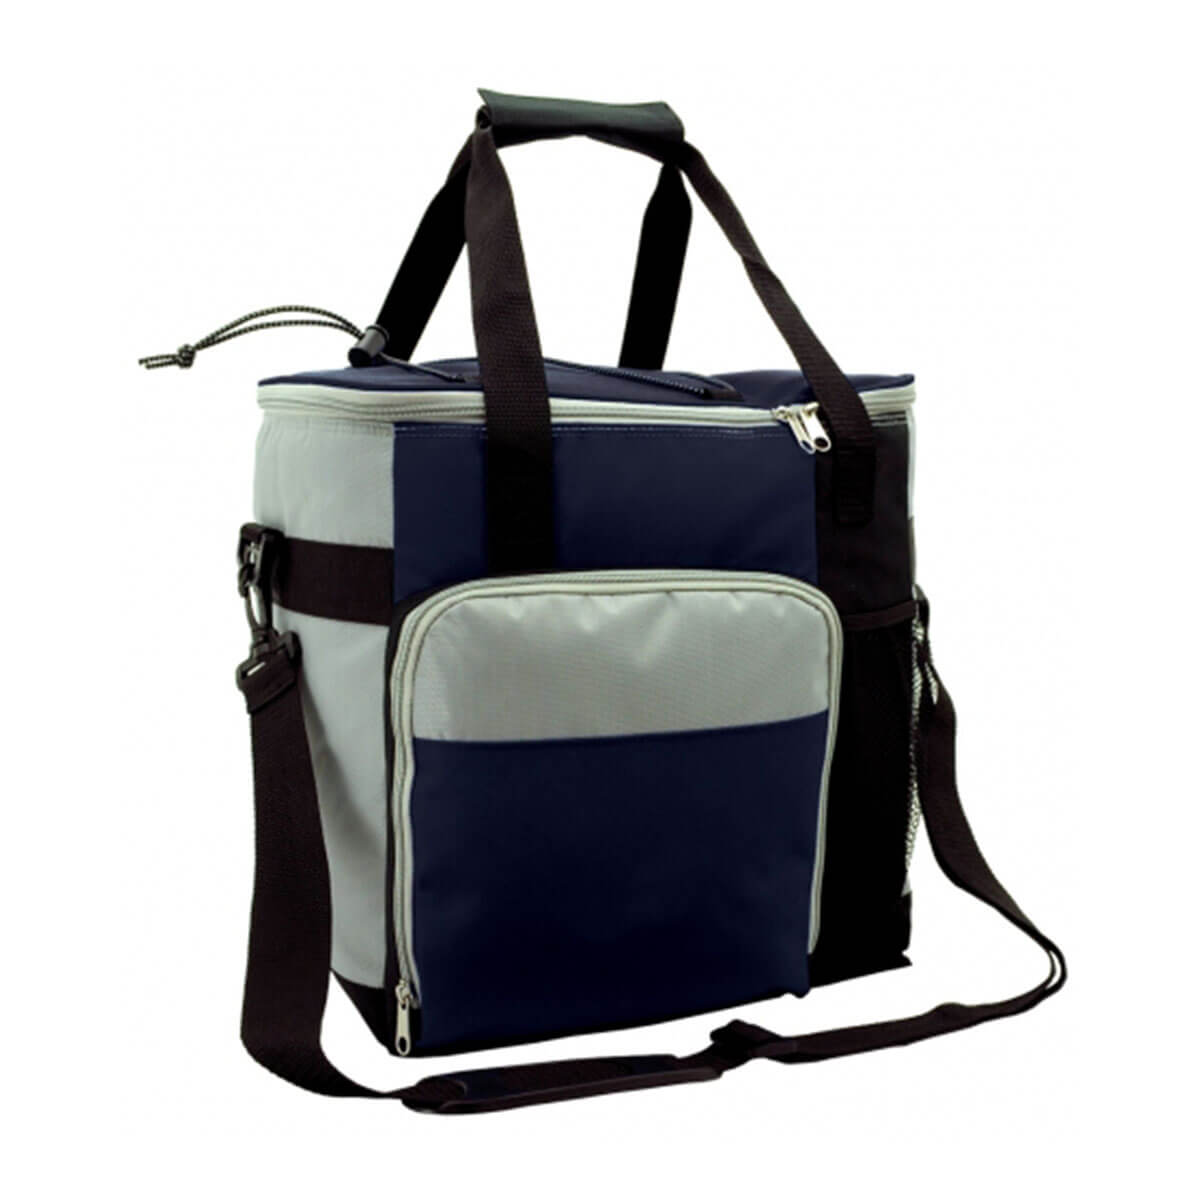 Arctic Cooler Bag-Navy / Grey / Black